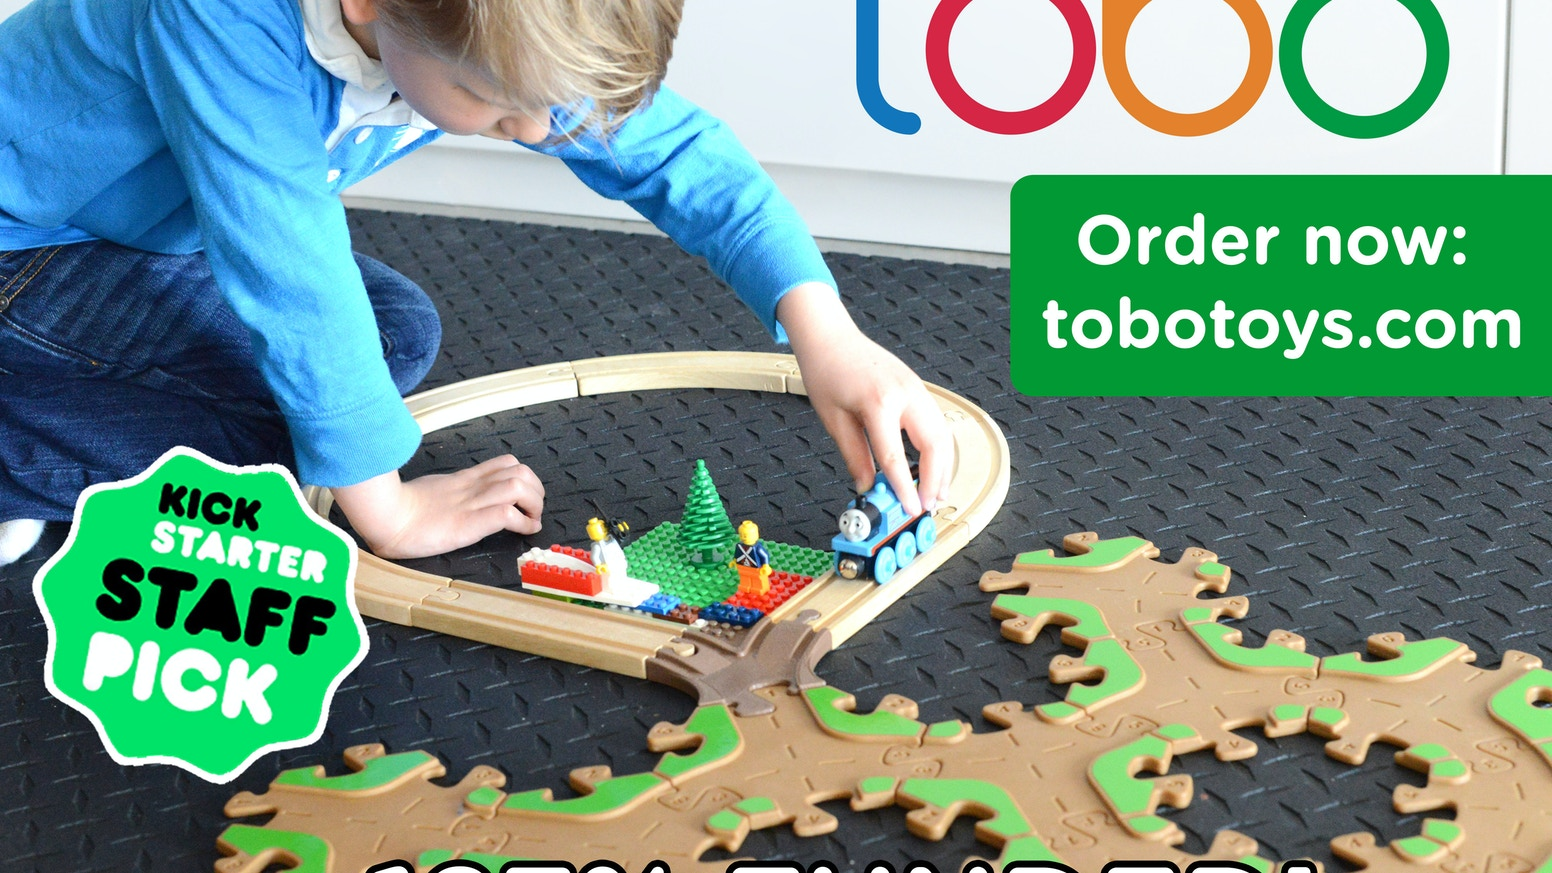 Wood toy vehicle tracks - Creative & fun while being safe & eco-friendly.  An adapter links Tobo to LEGO® and Thomas™! www.tobotoys.com